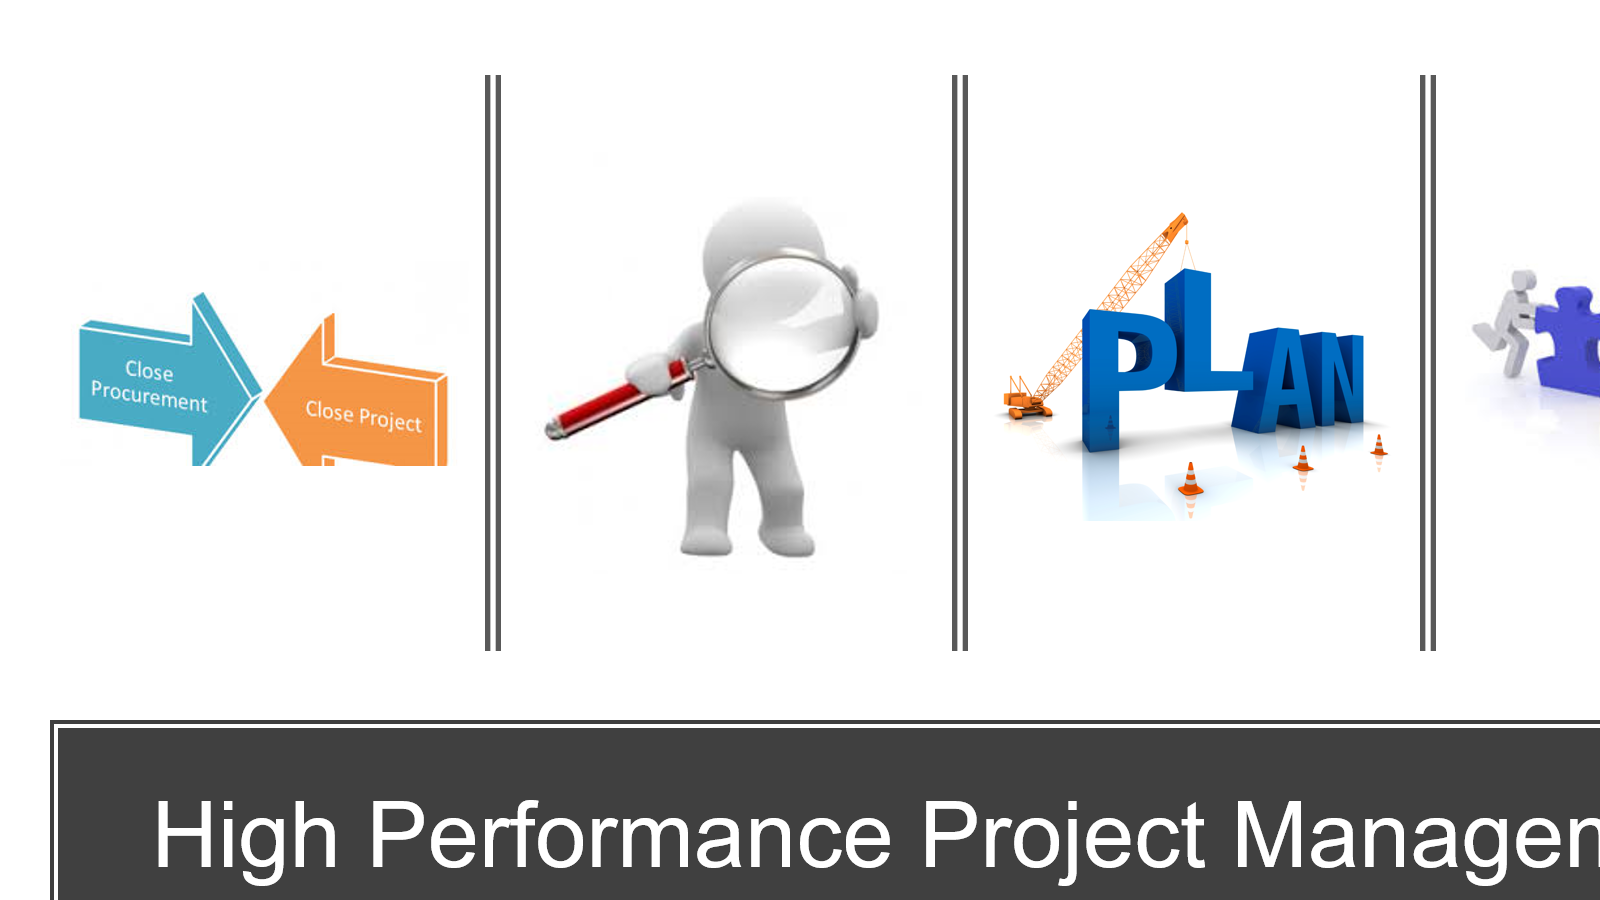 (HPPM) High Performance Project Management